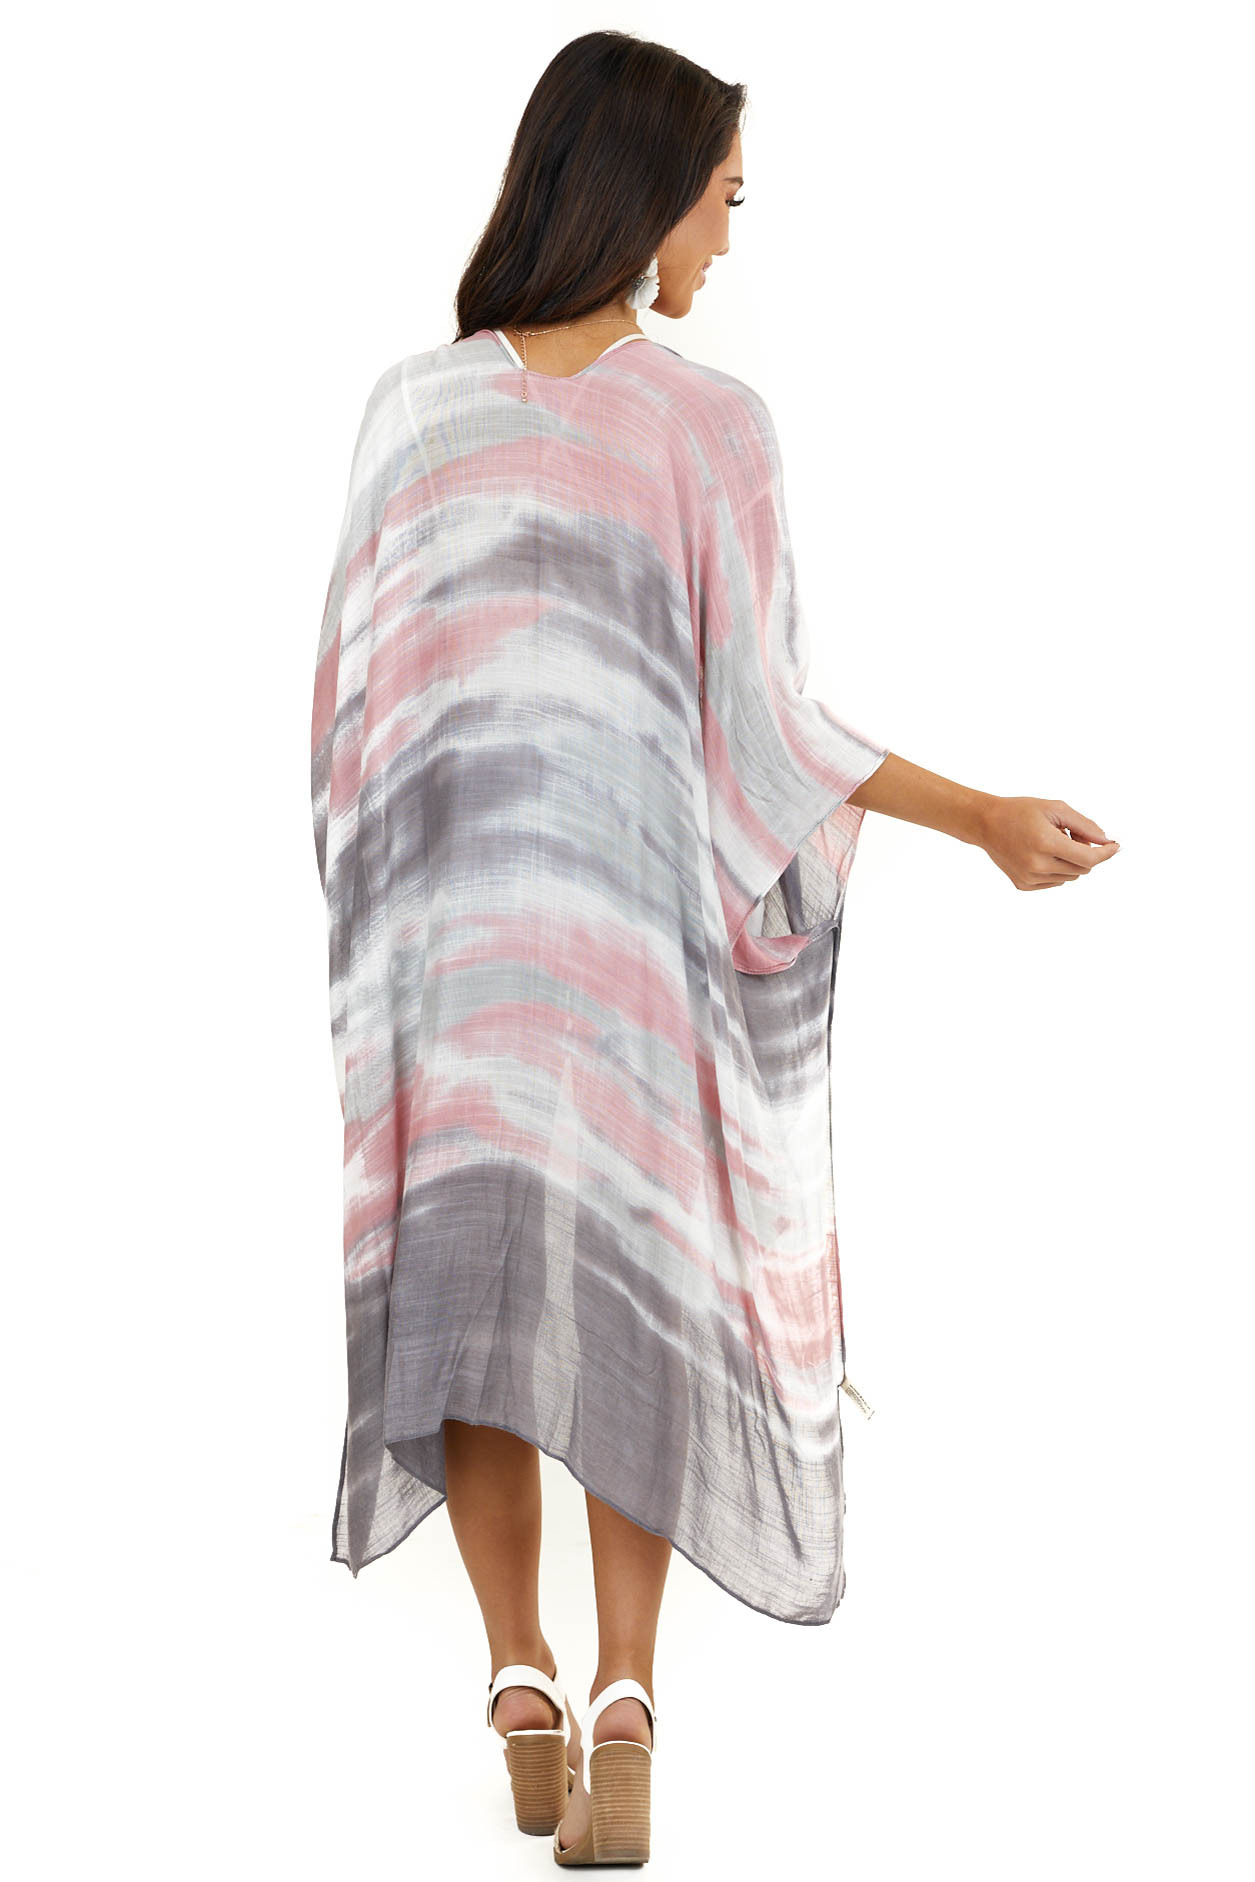 Charcoal and Baby Pink Ombre Kimono with Side Slits